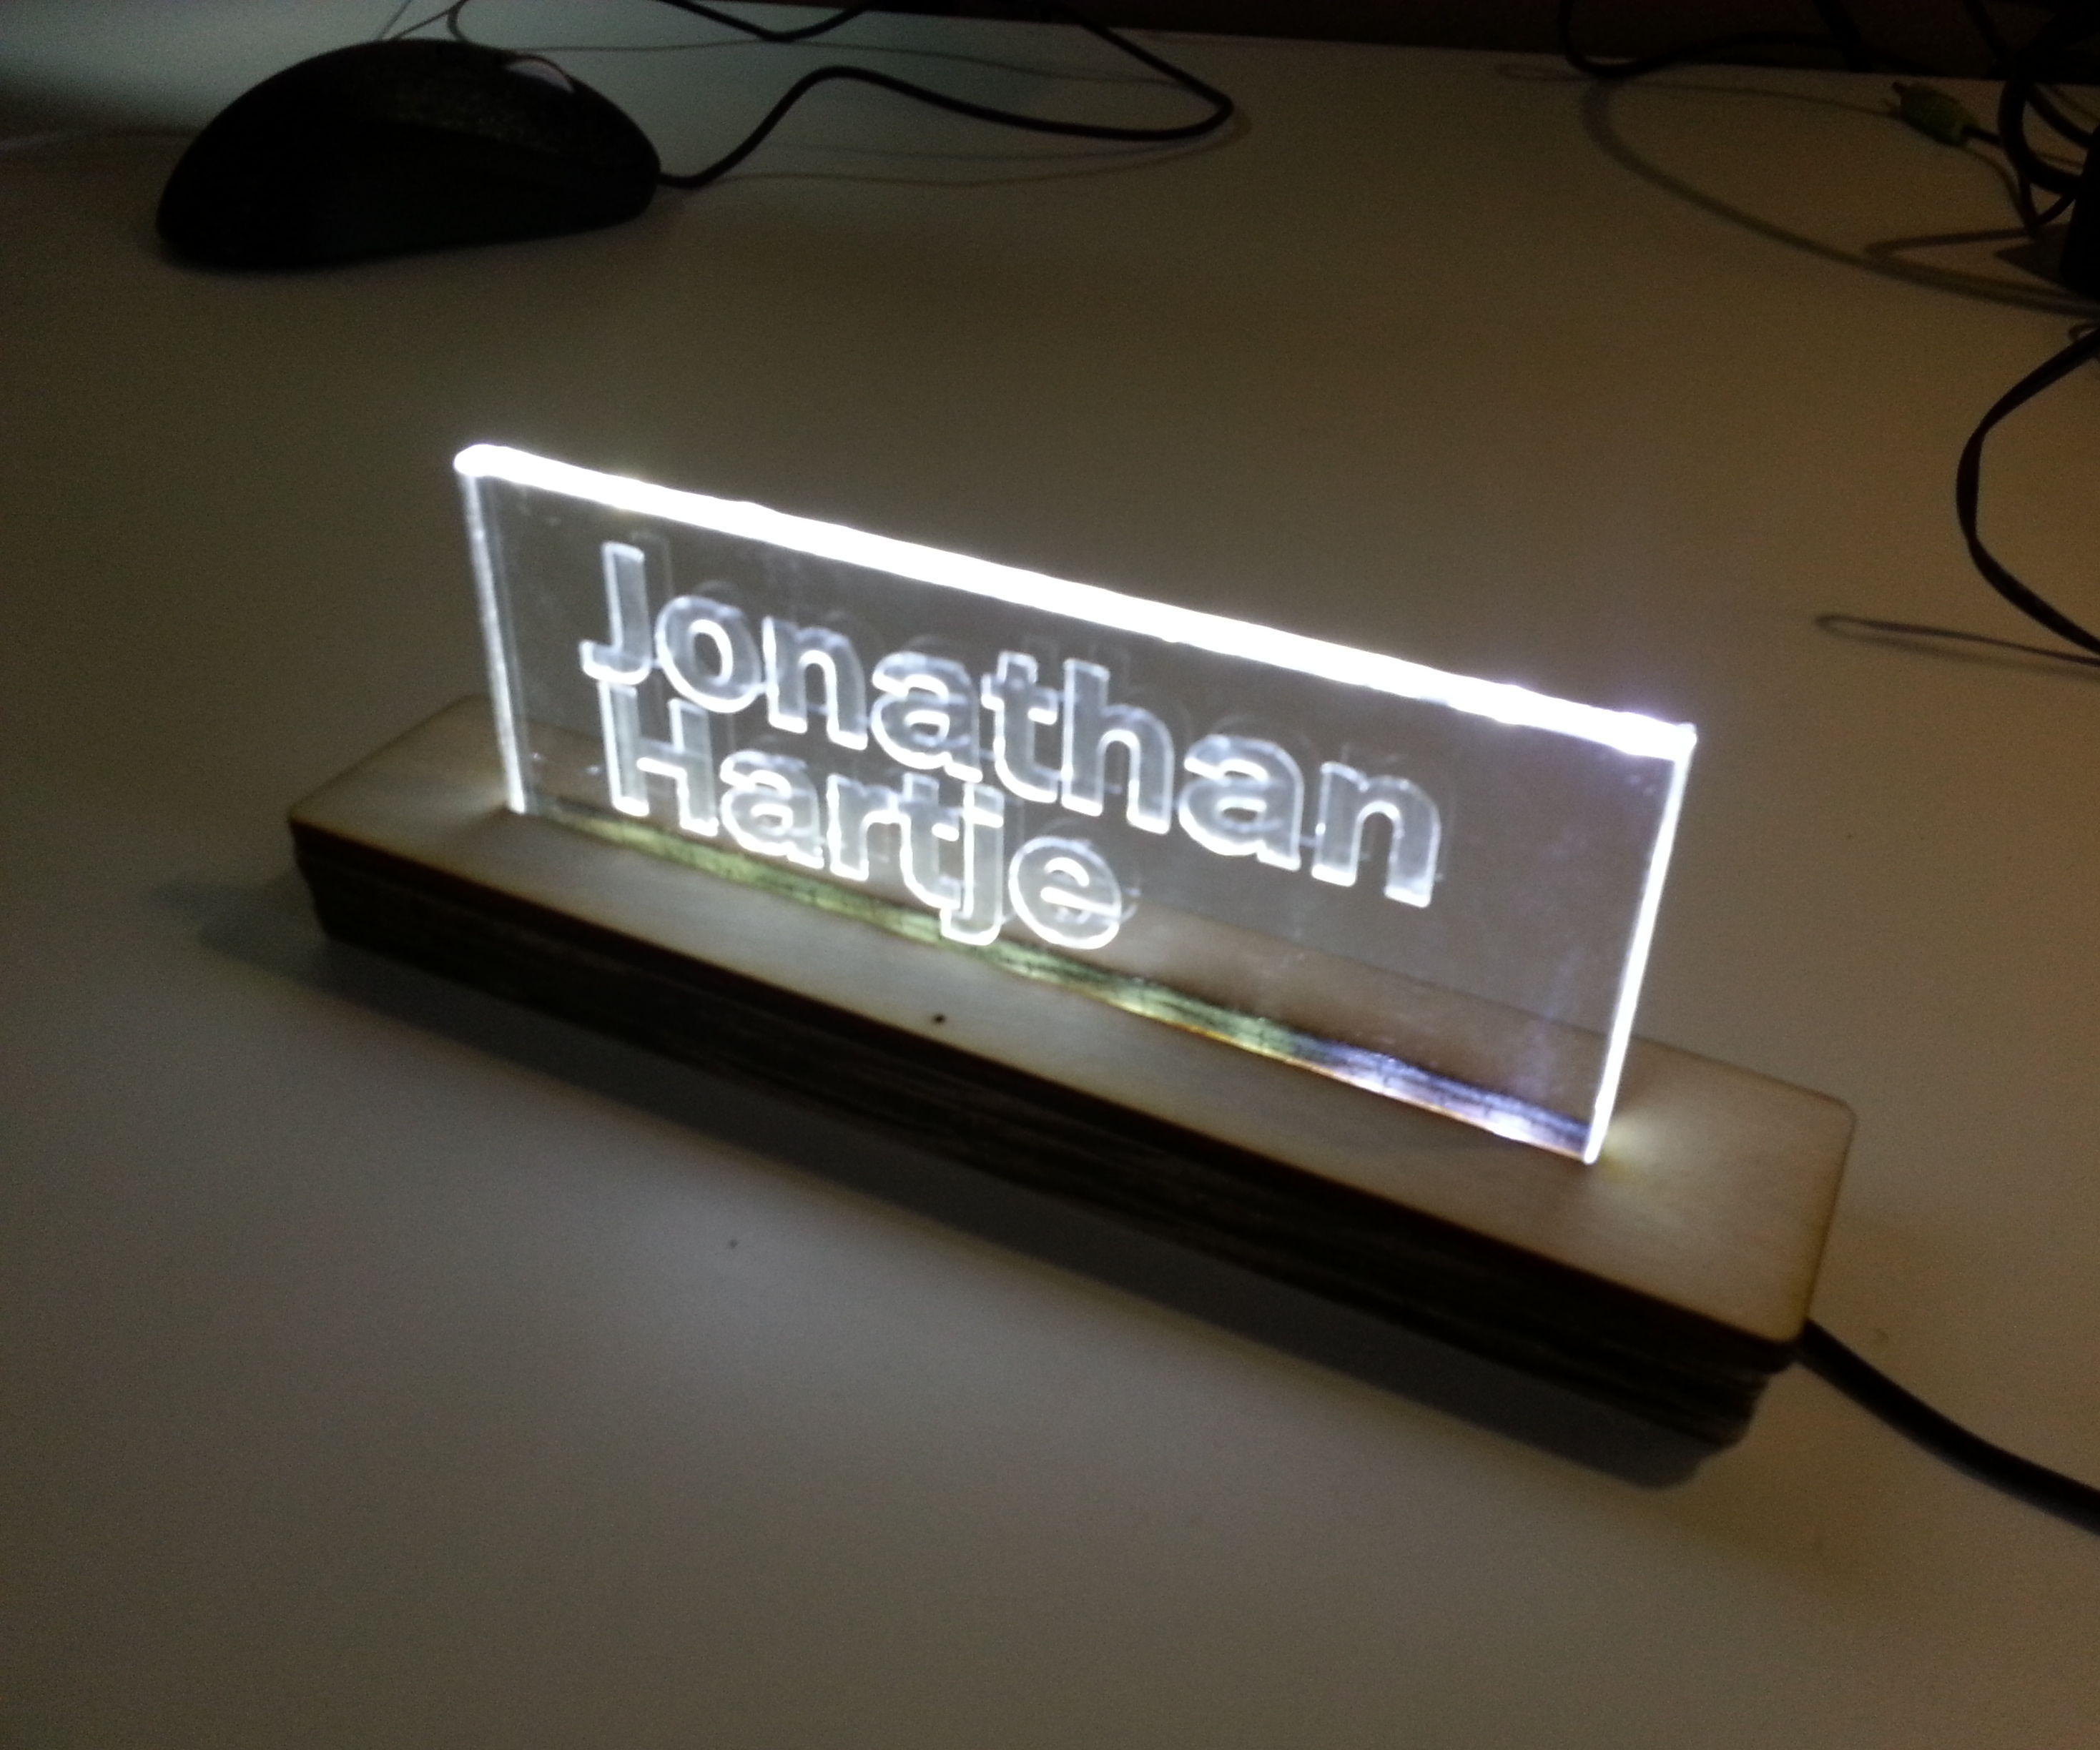 Design and build a side-lit LED sign at TechShop